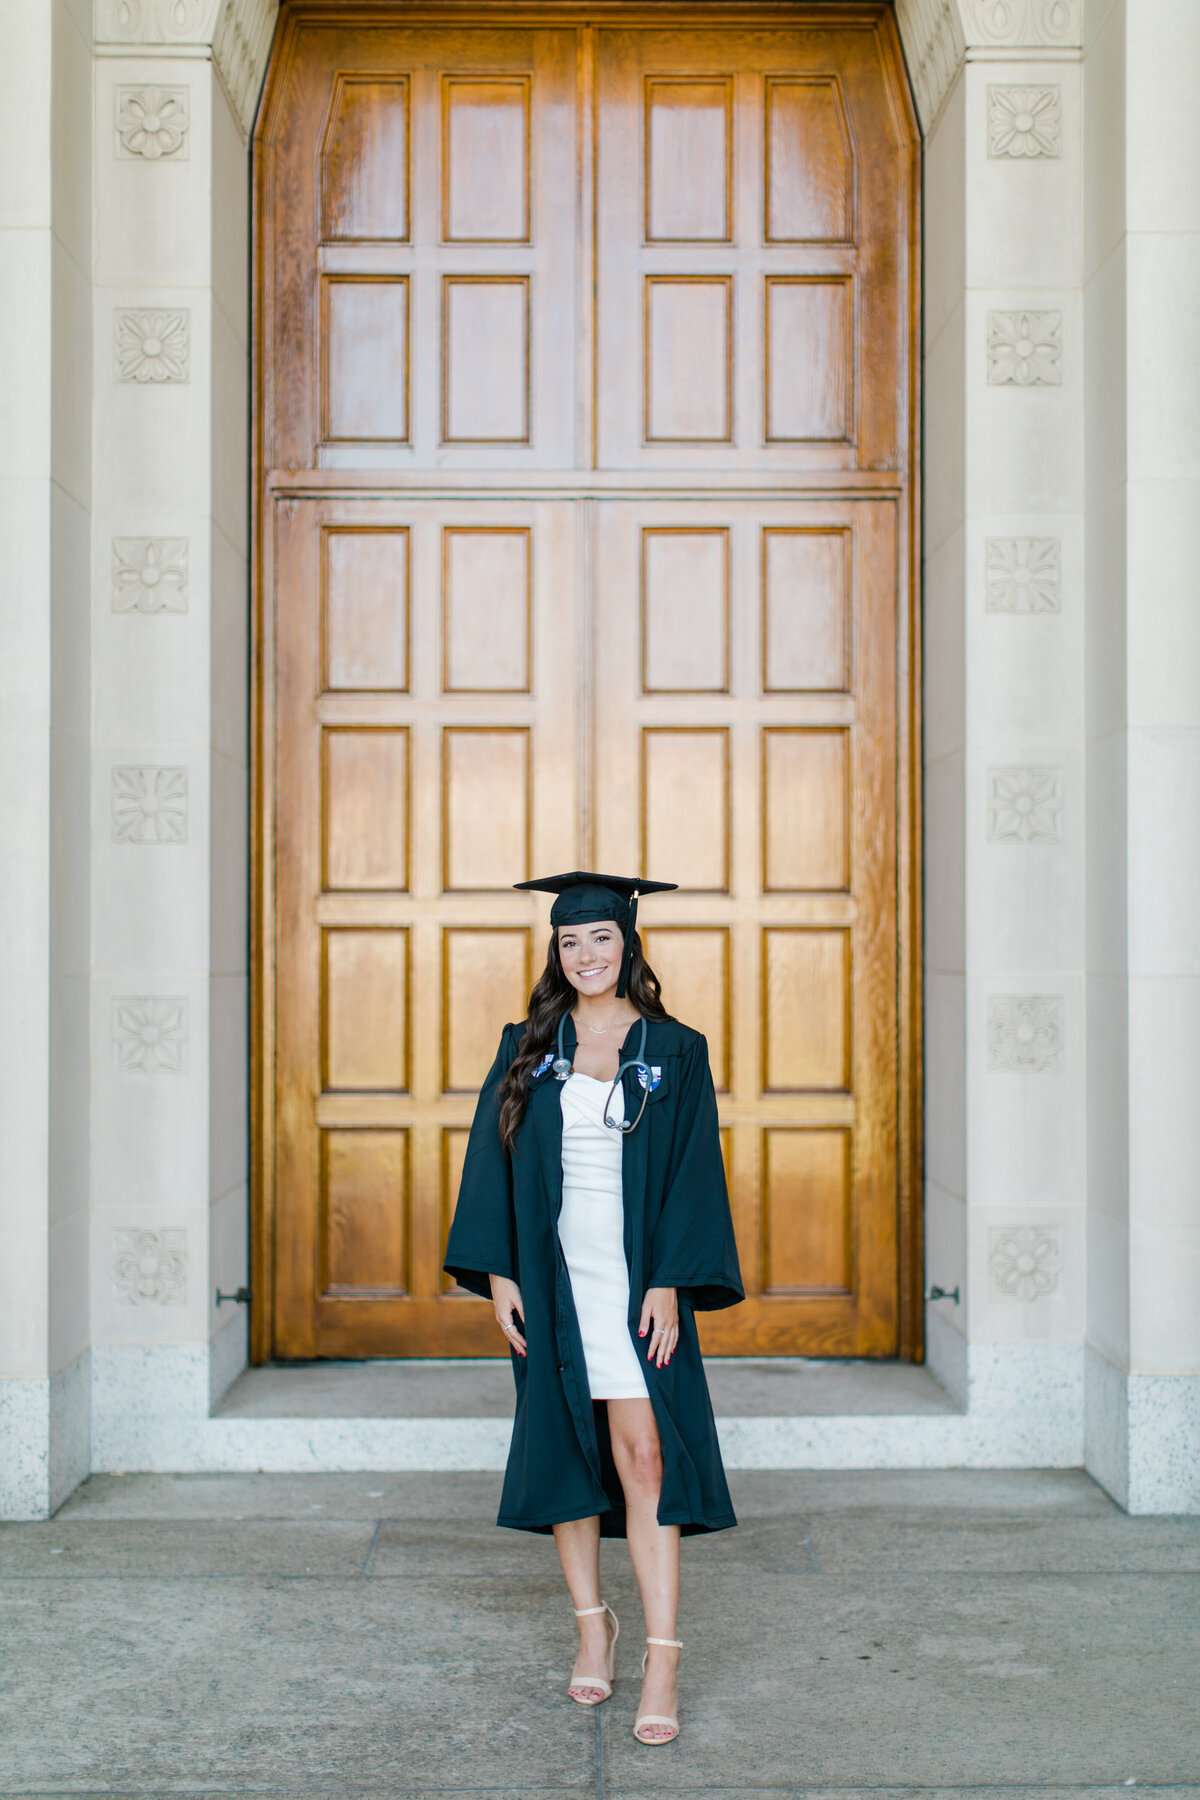 Catholic_University_CUA_Senior_Graduation_Session_2020_Angelika_Johns_Photography-4279